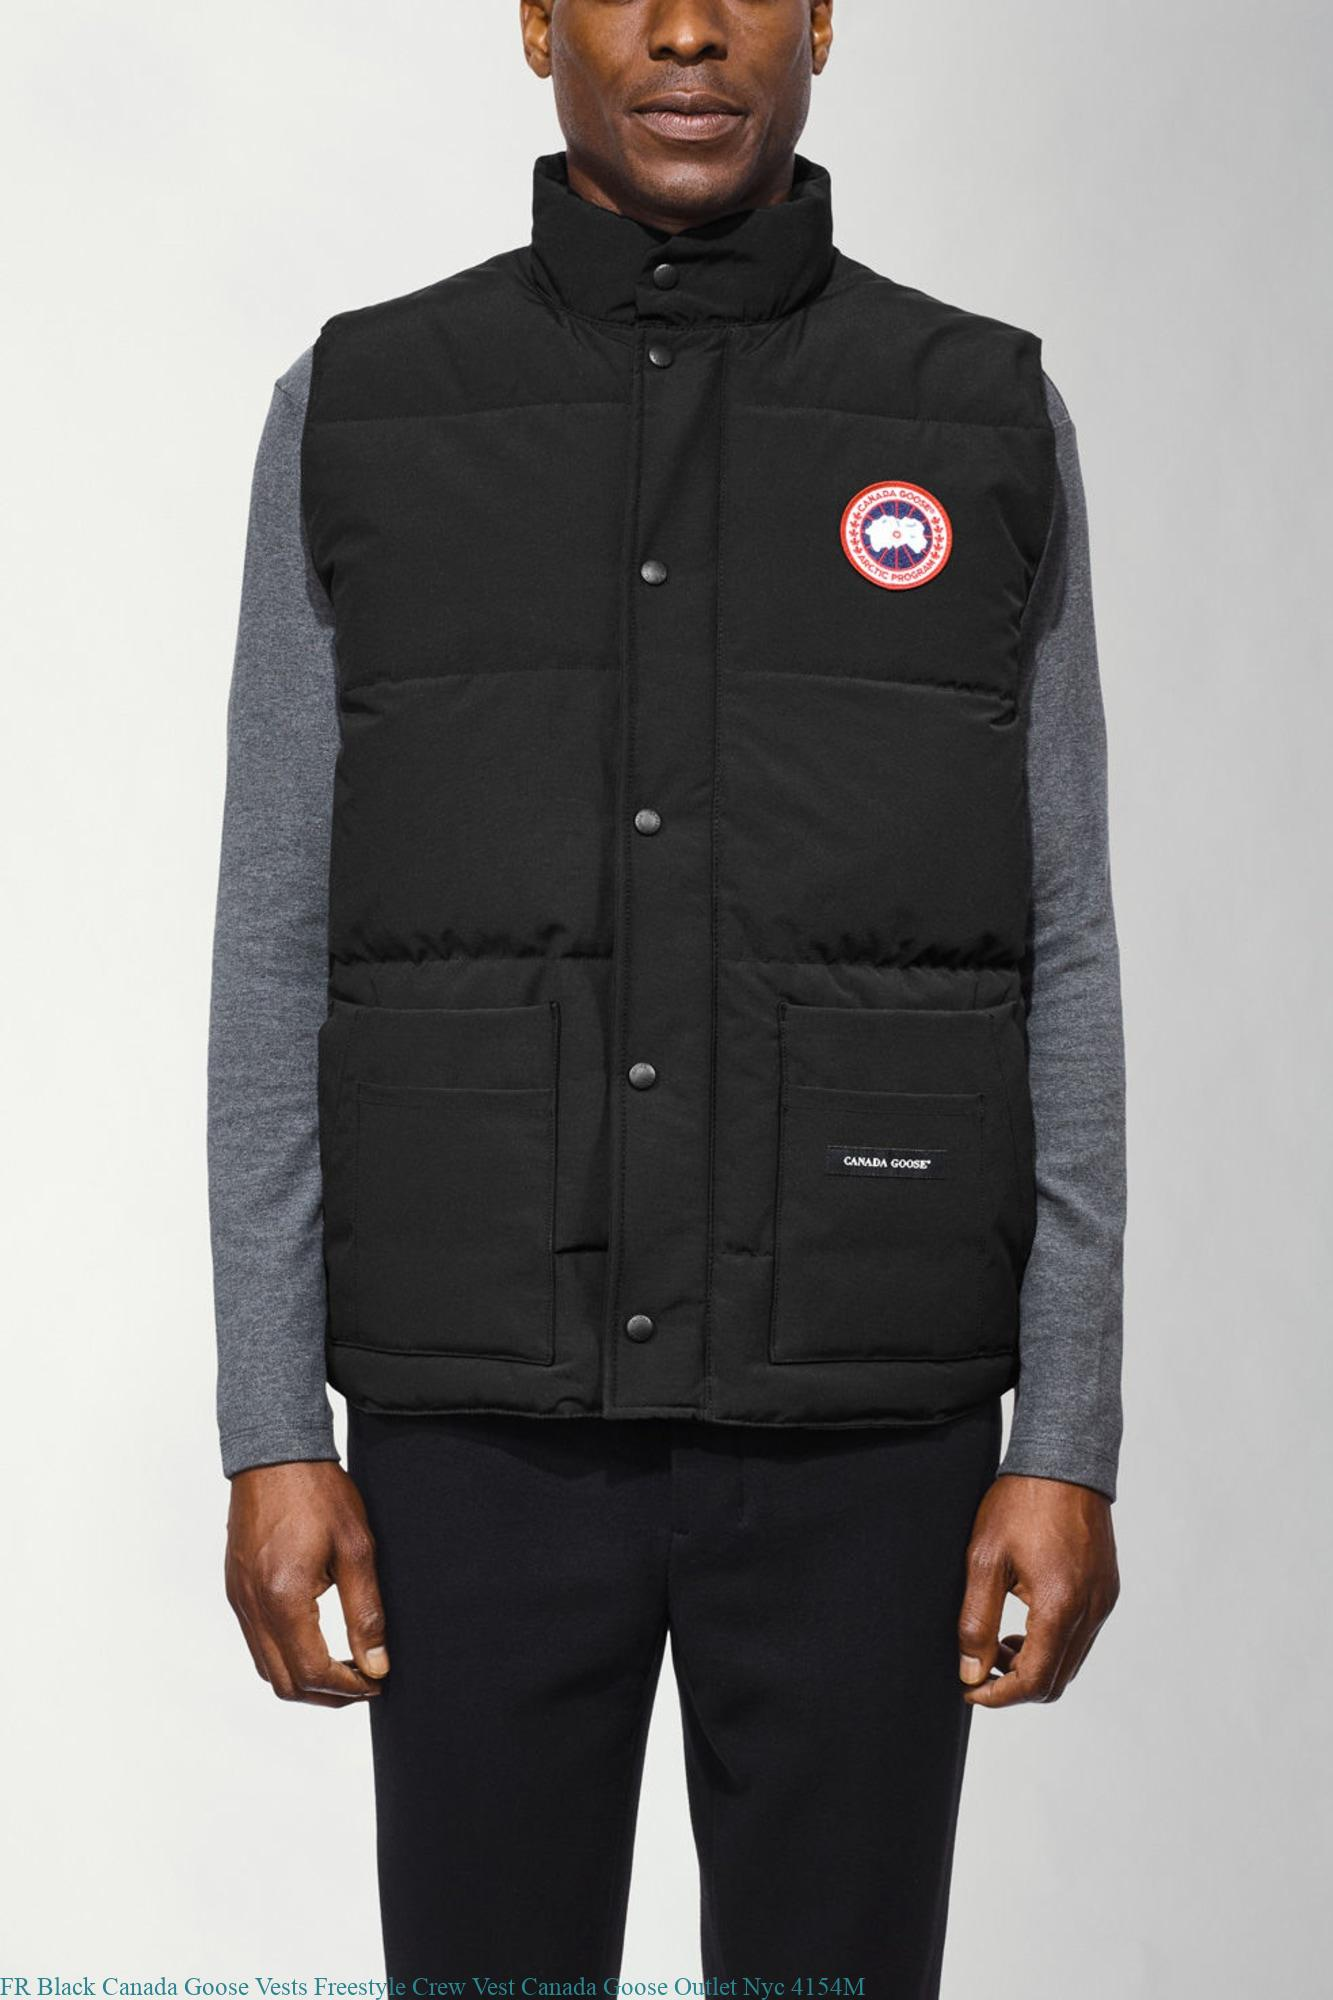 FR Black Canada Goose Vests Freestyle Crew Vest Canada Goose Outlet Nyc  4154M – Cheap Canada Goose Outlet Store Jacket Expedition Parka Sale 825181501812